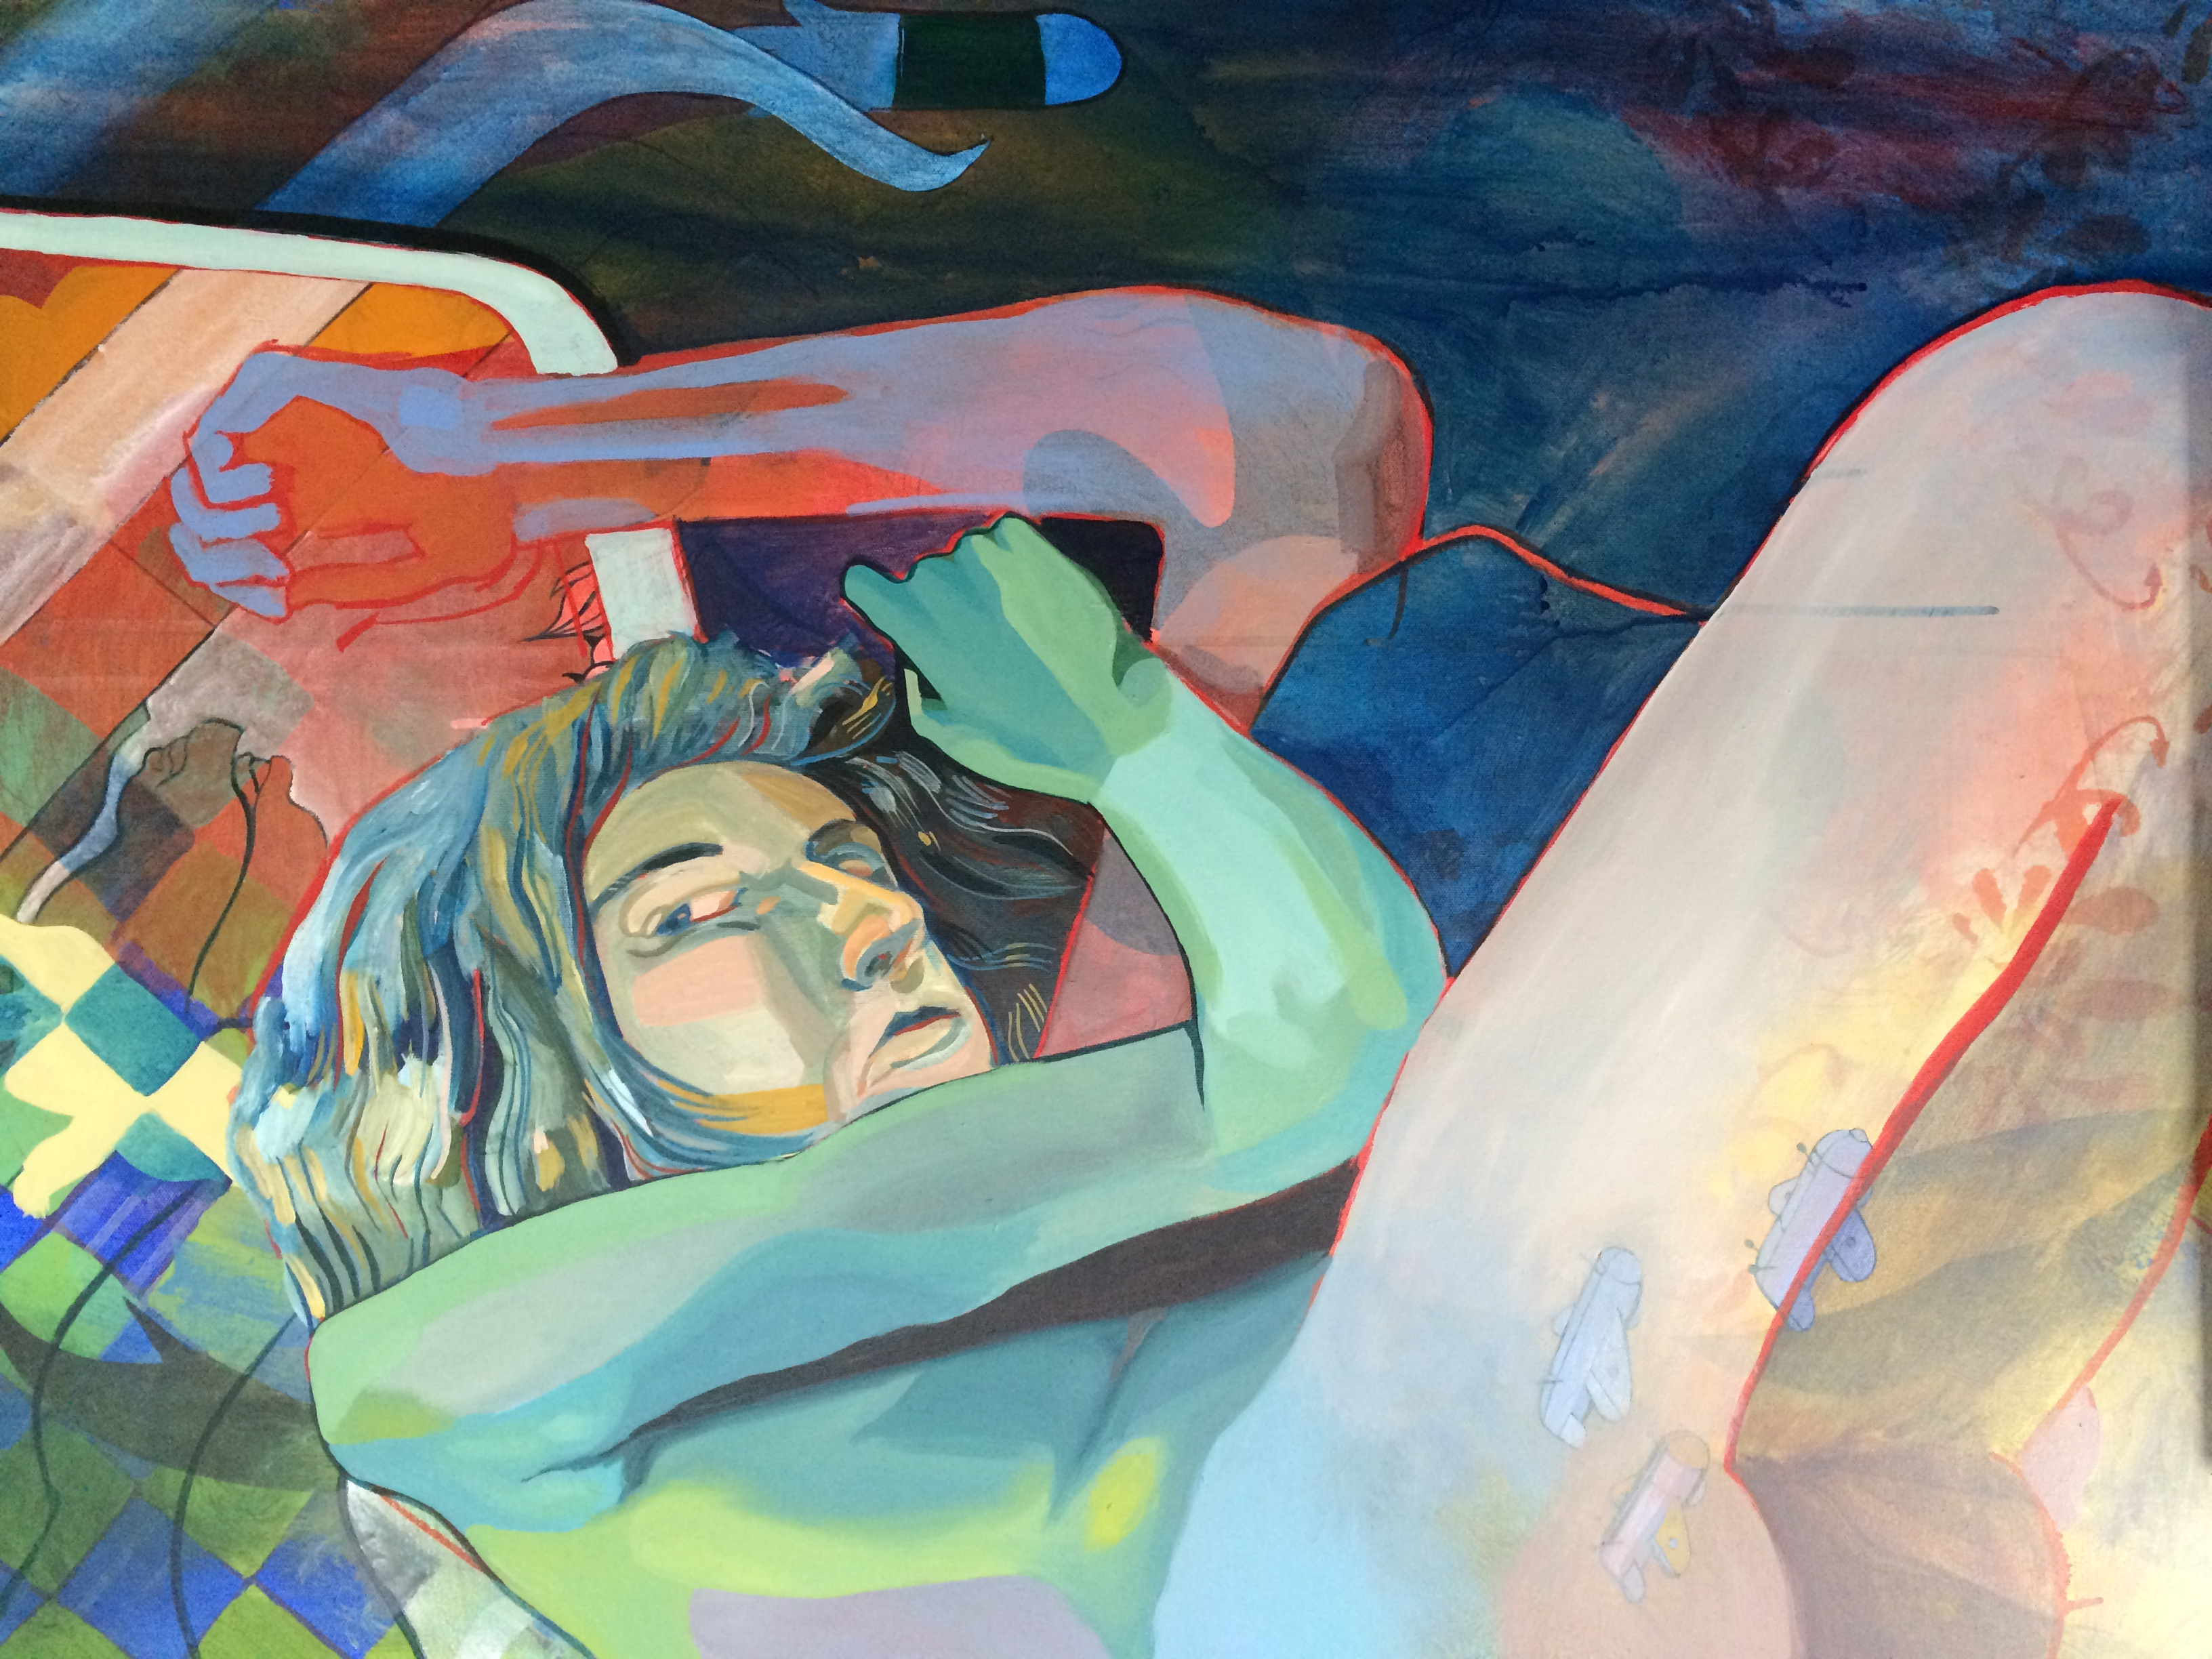 """Woman on couch, napping. 30""""x40"""", acrylic on canvas, by Alex Feliciano"""